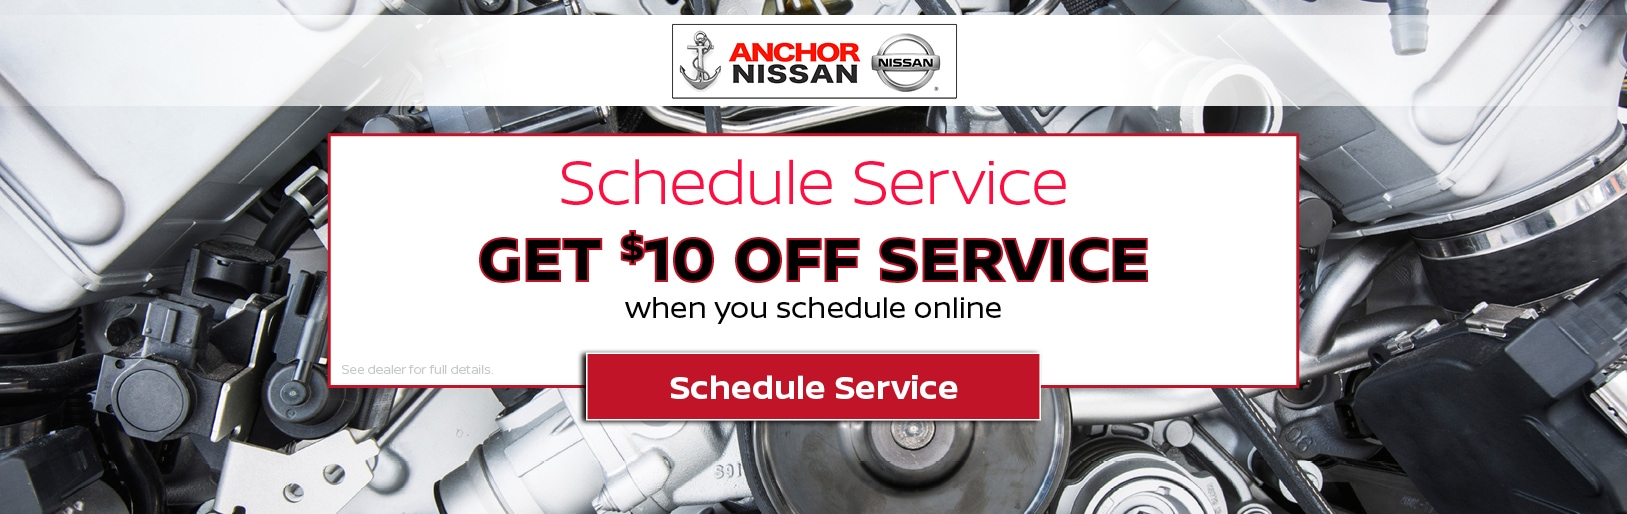 Anchor Nissan North Smithfield | New & Used Nissan in RI ...